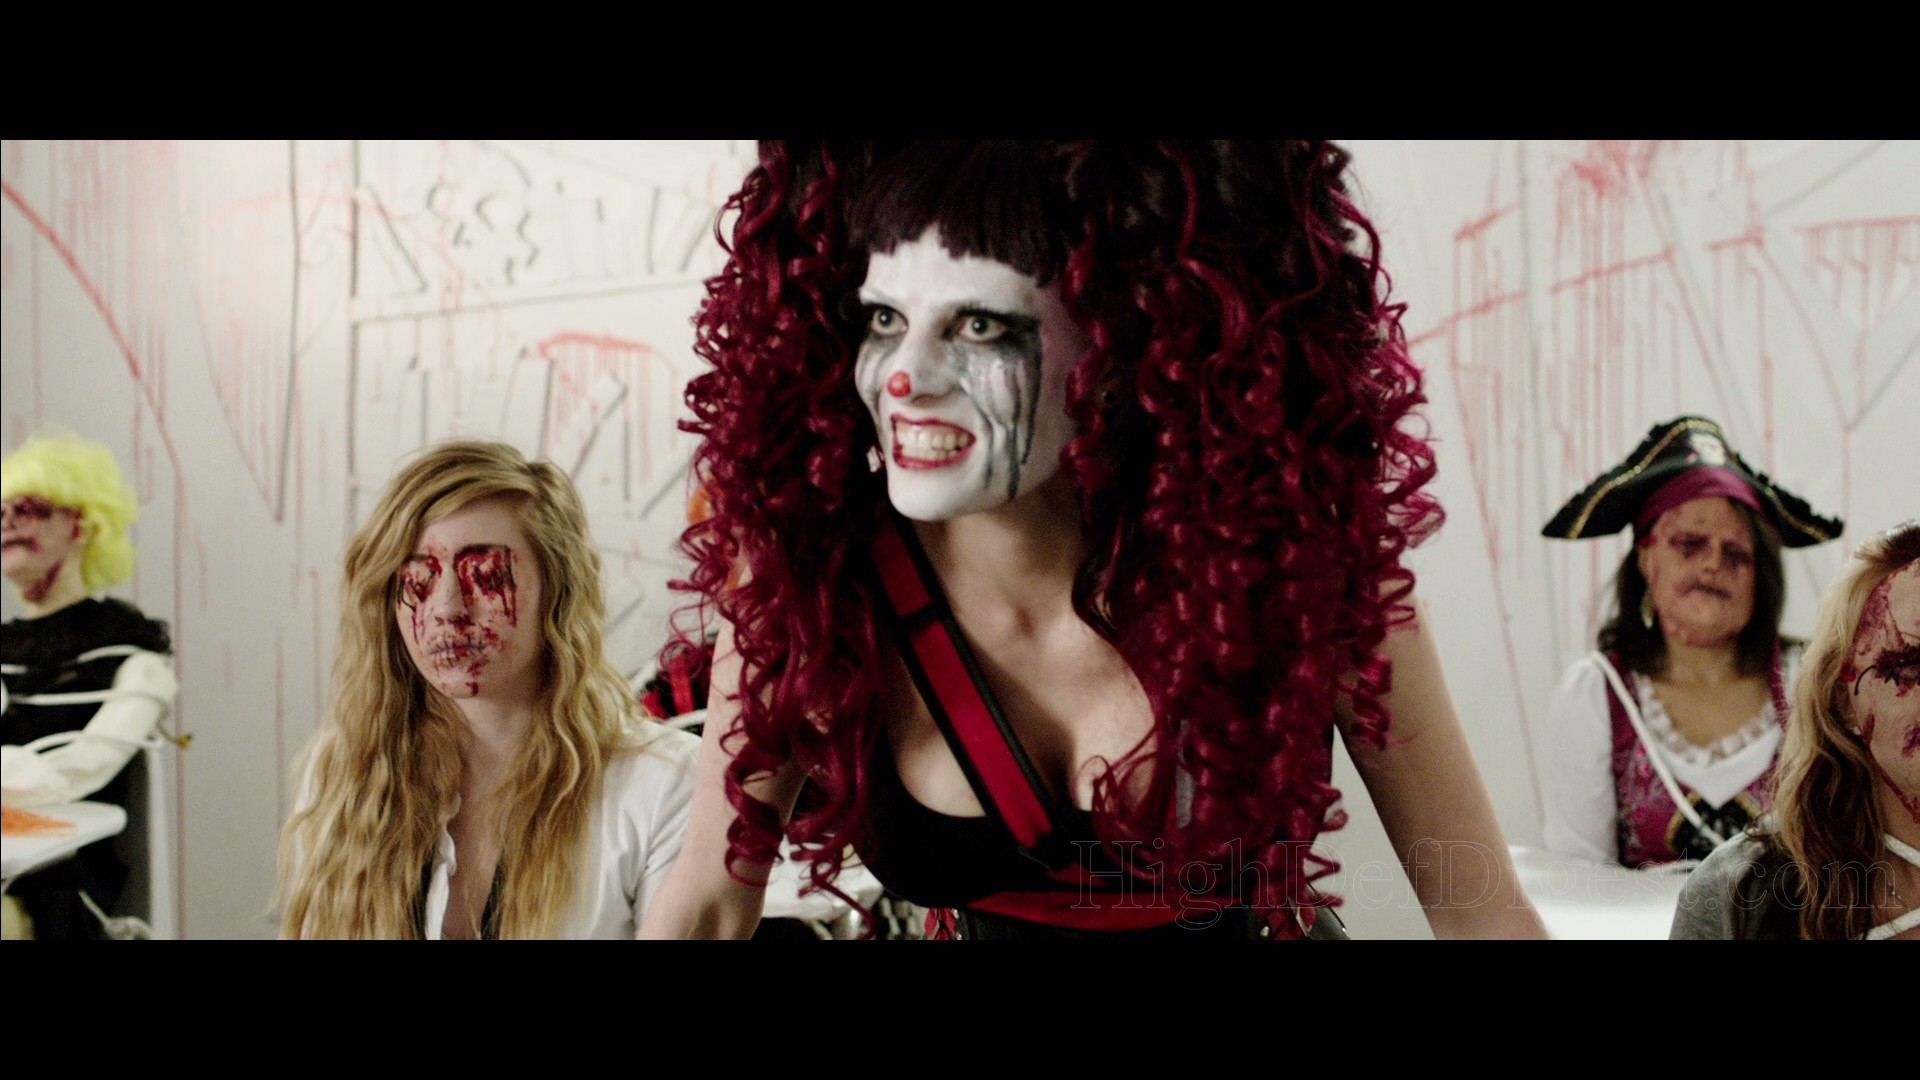 Res: 1920x1080, Scary Clowns images Dollface Funhouse Massacre HD wallpaper and background  photos